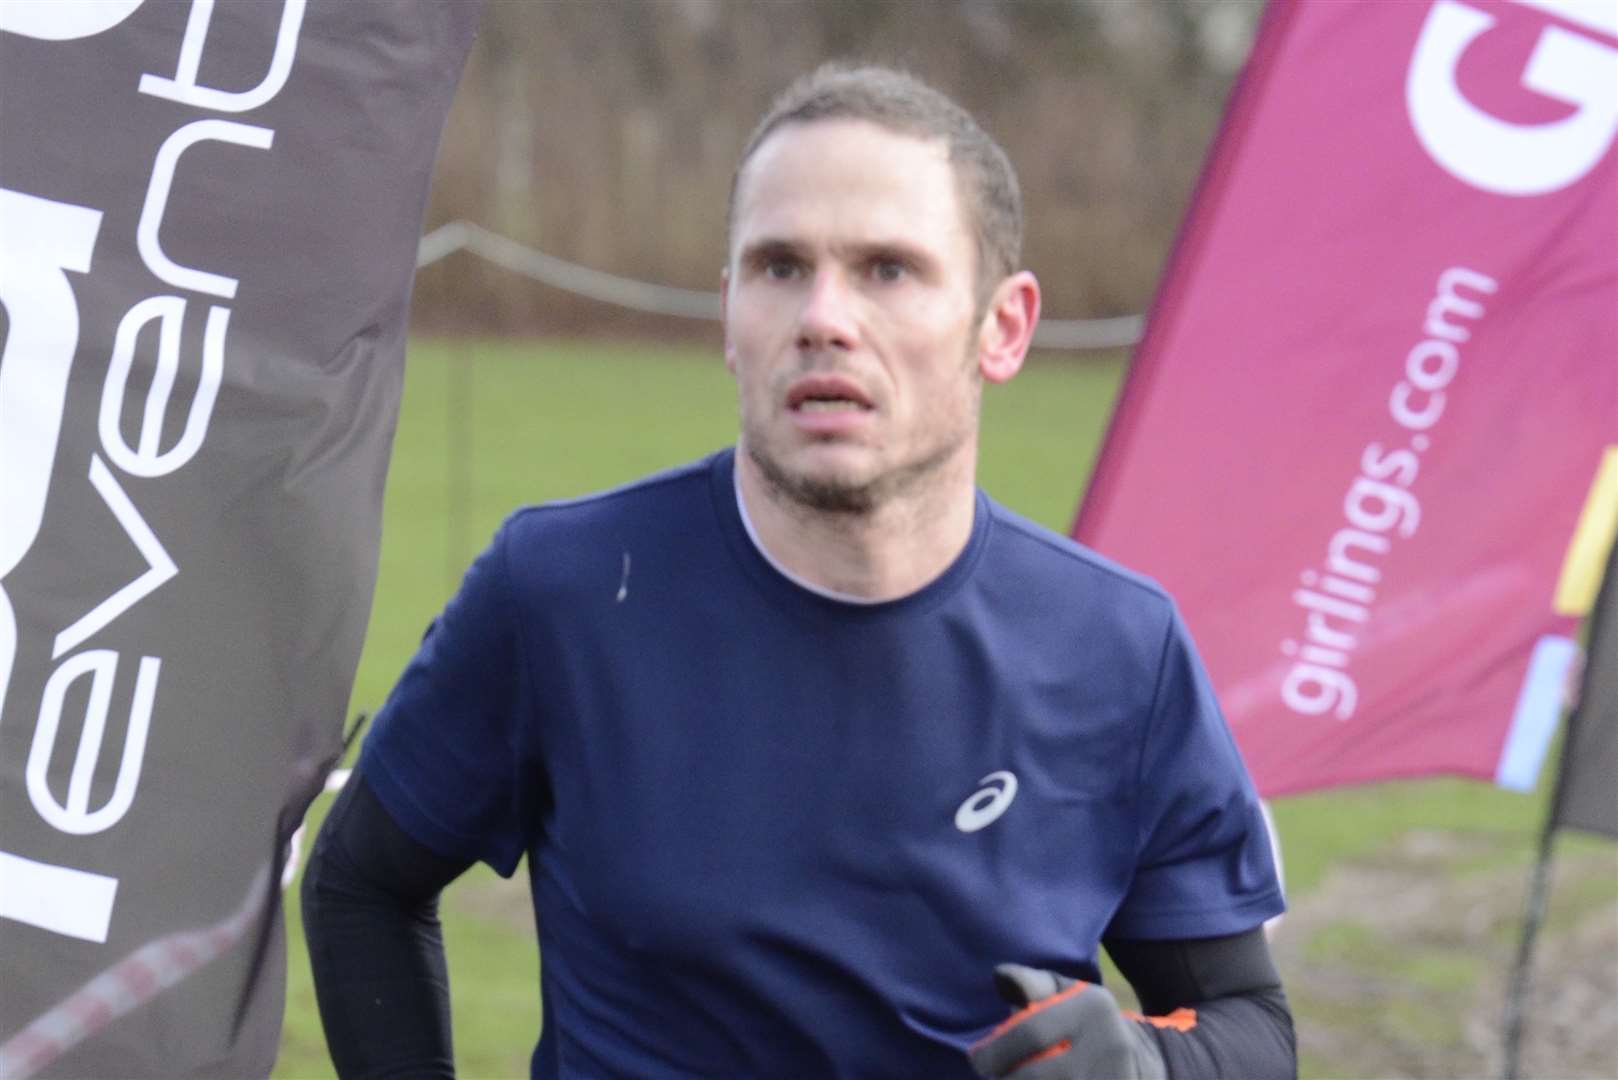 Nick Collins of Ashford AC won the one-hour challenge